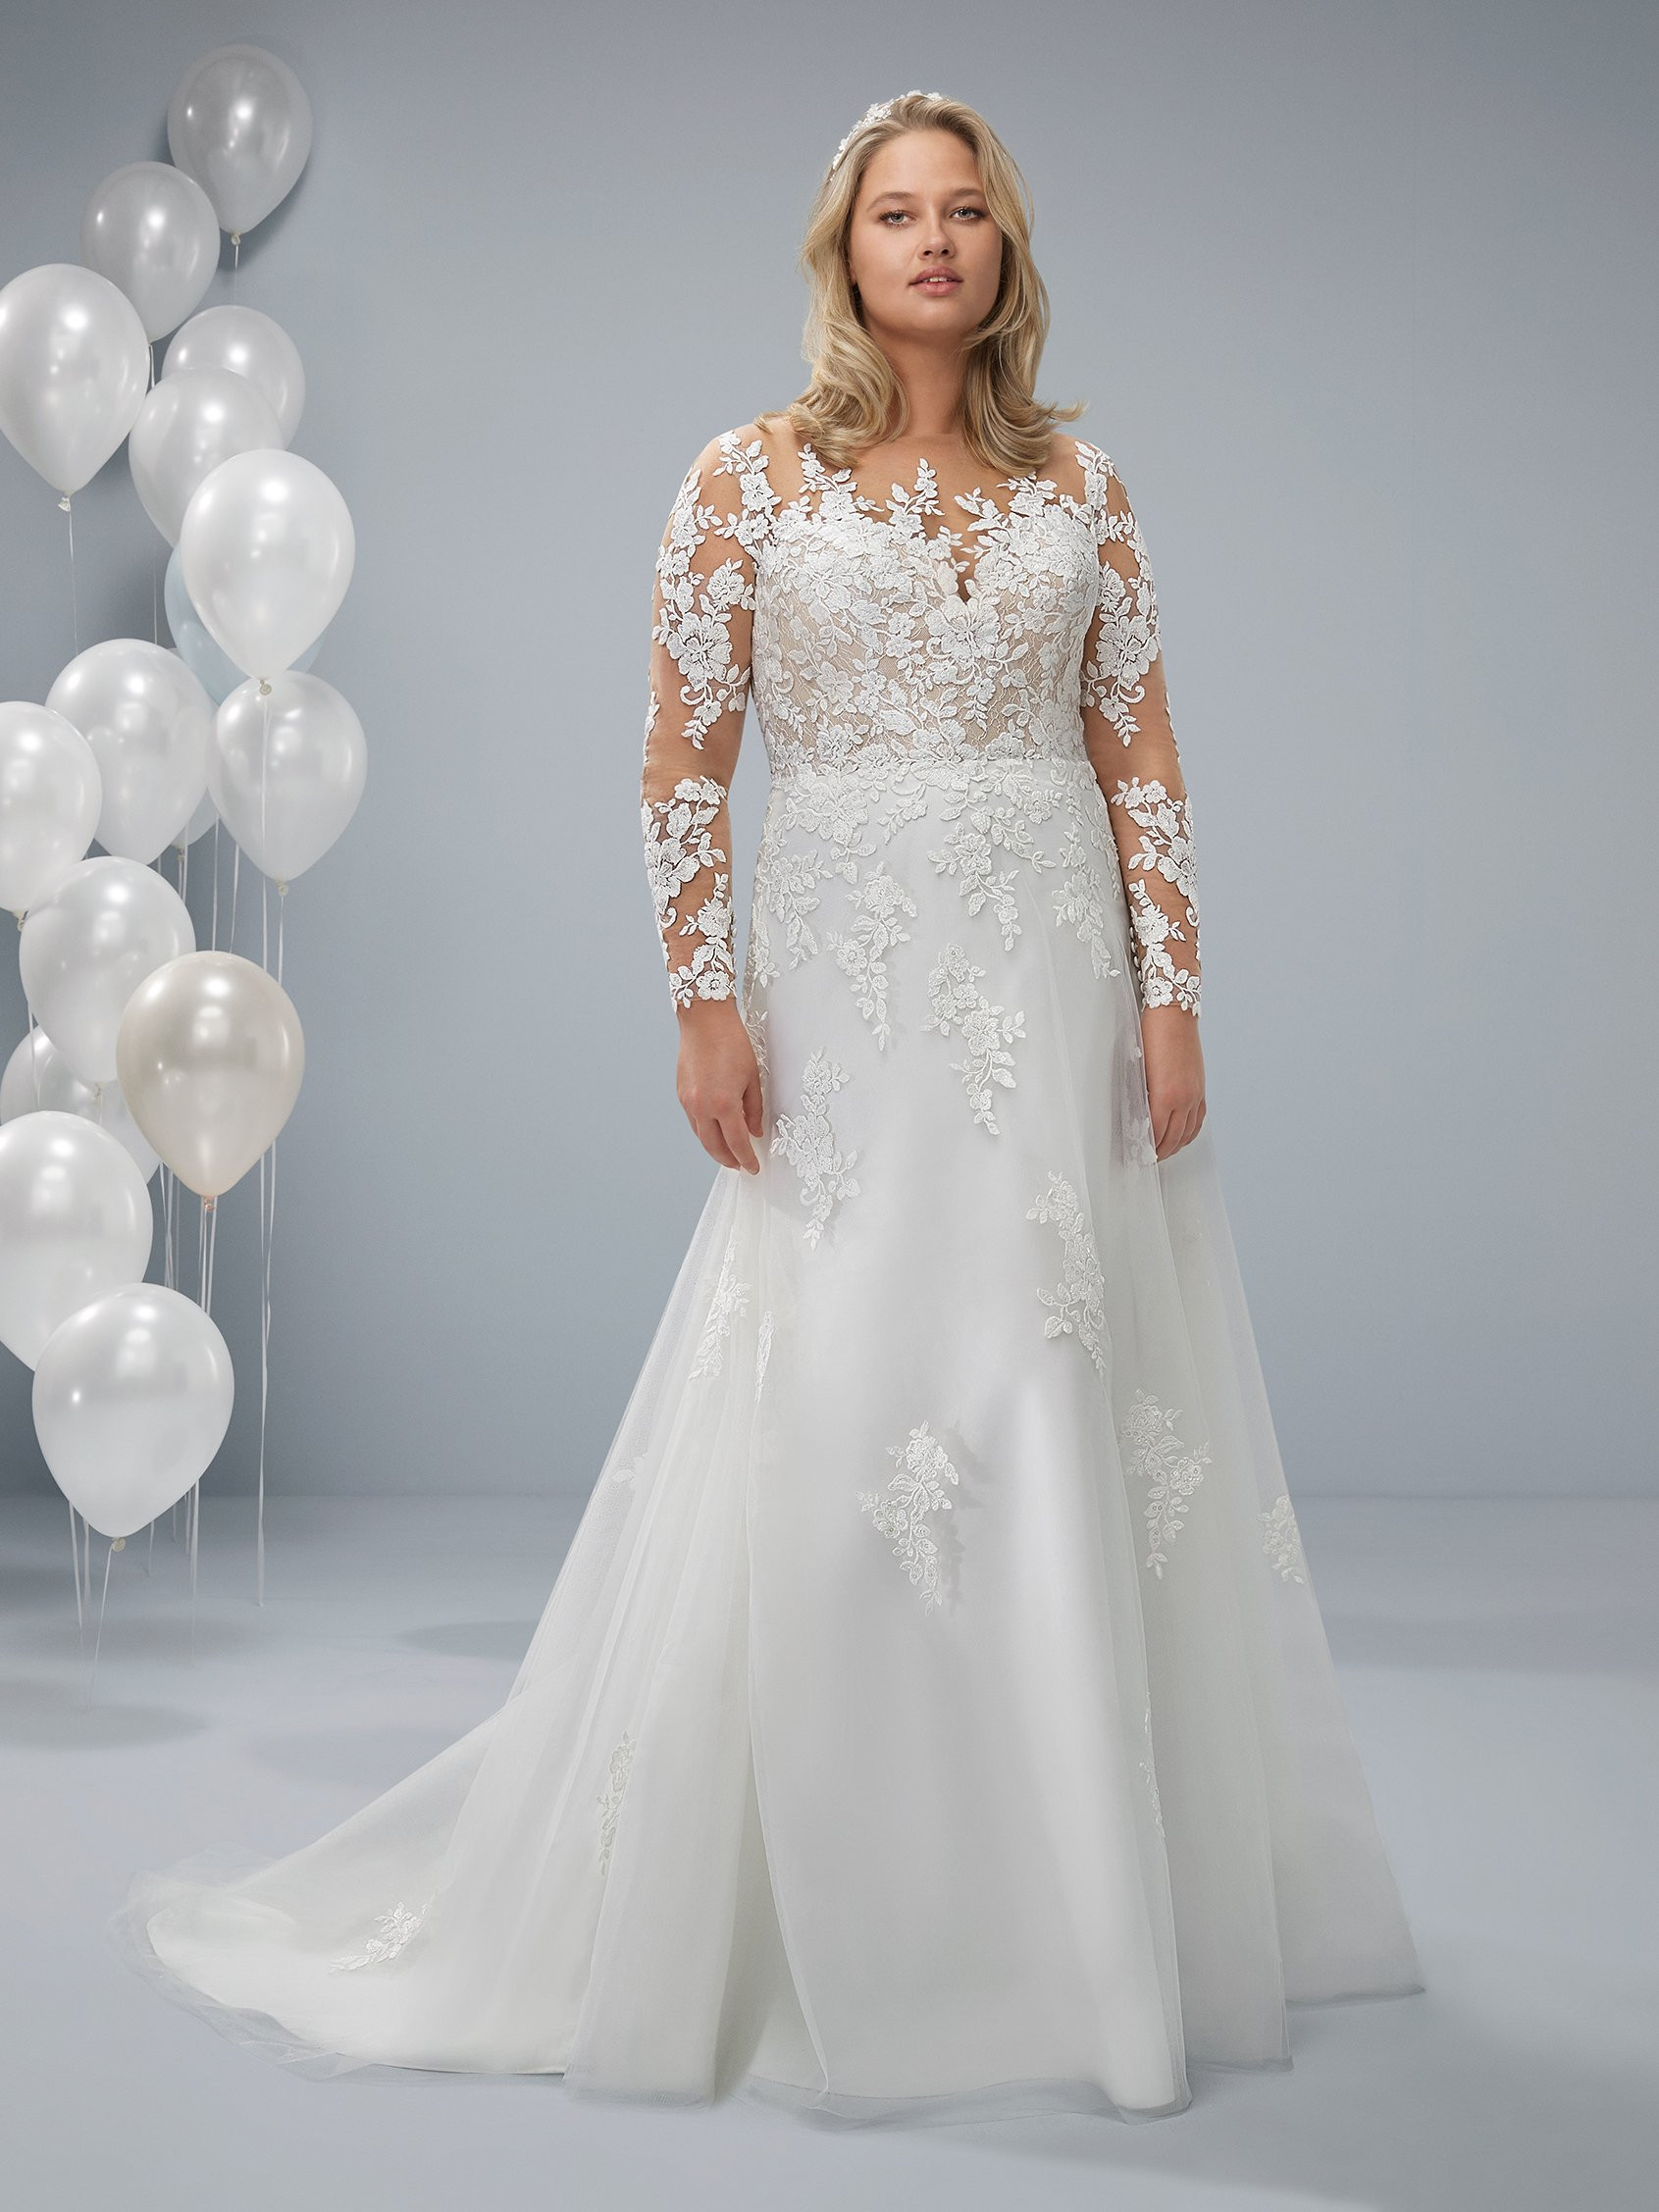 Brautkleid-ODRE_PLUS_B